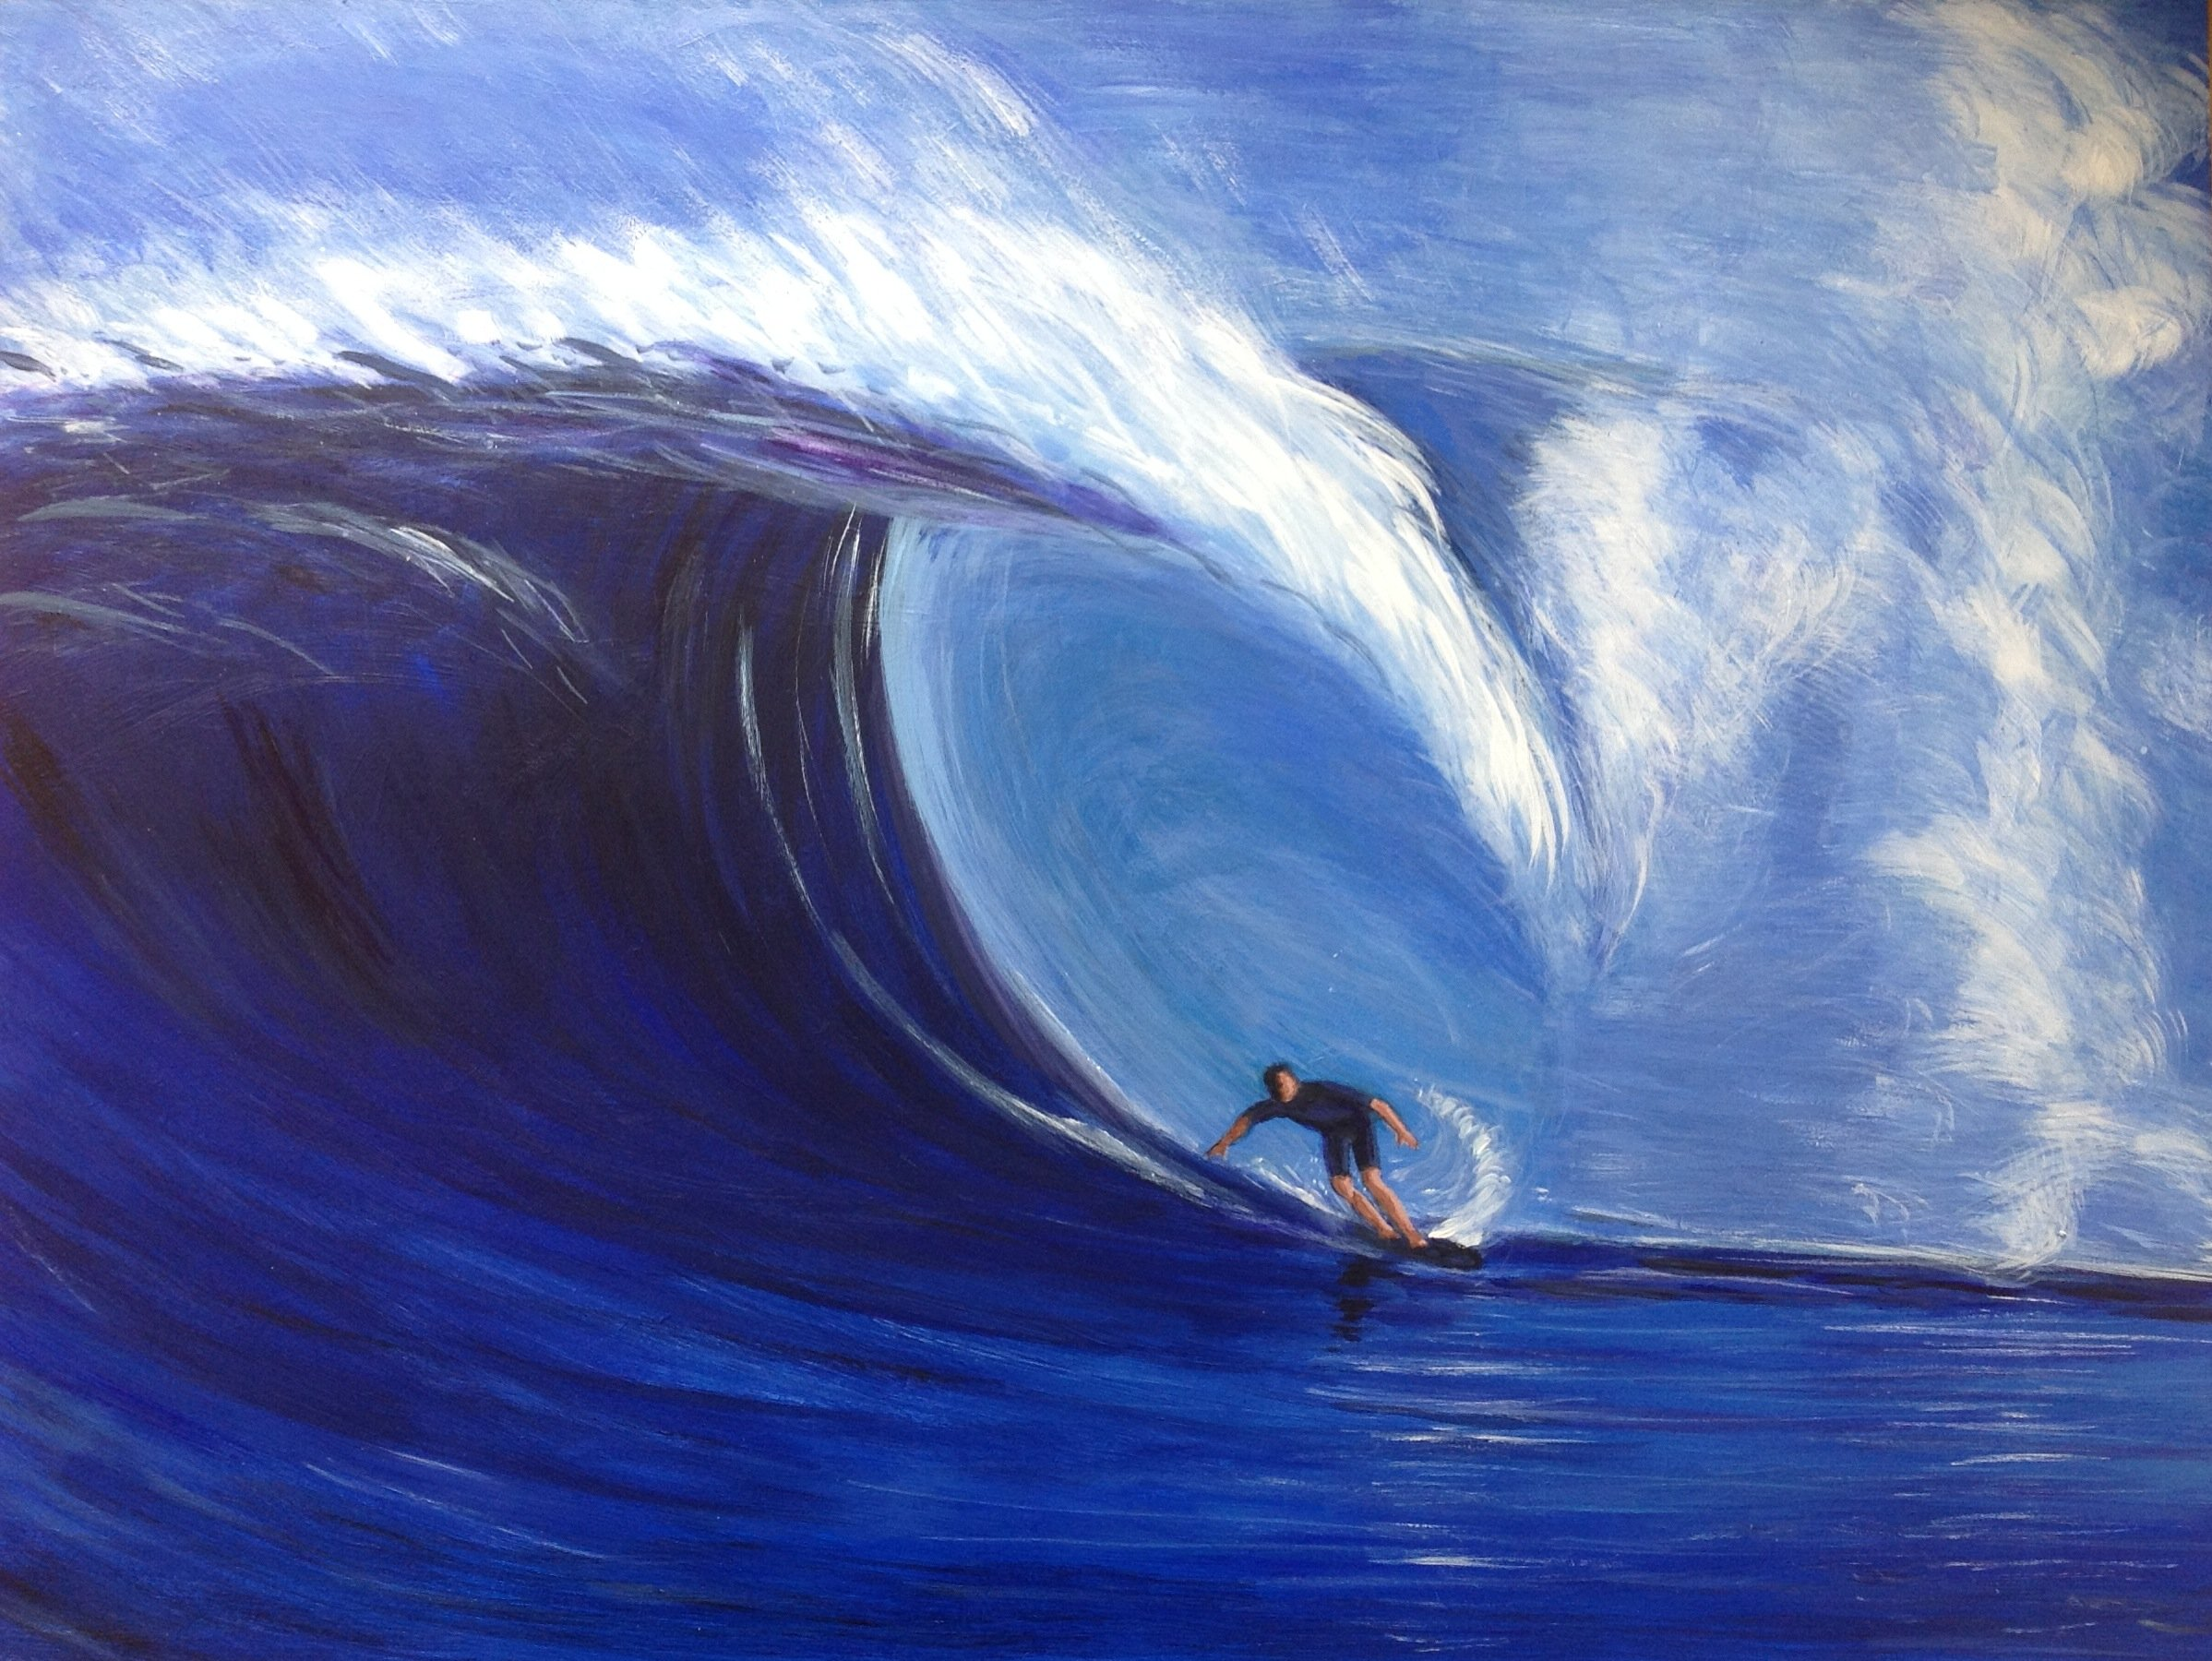 riding the wave art gallery jose